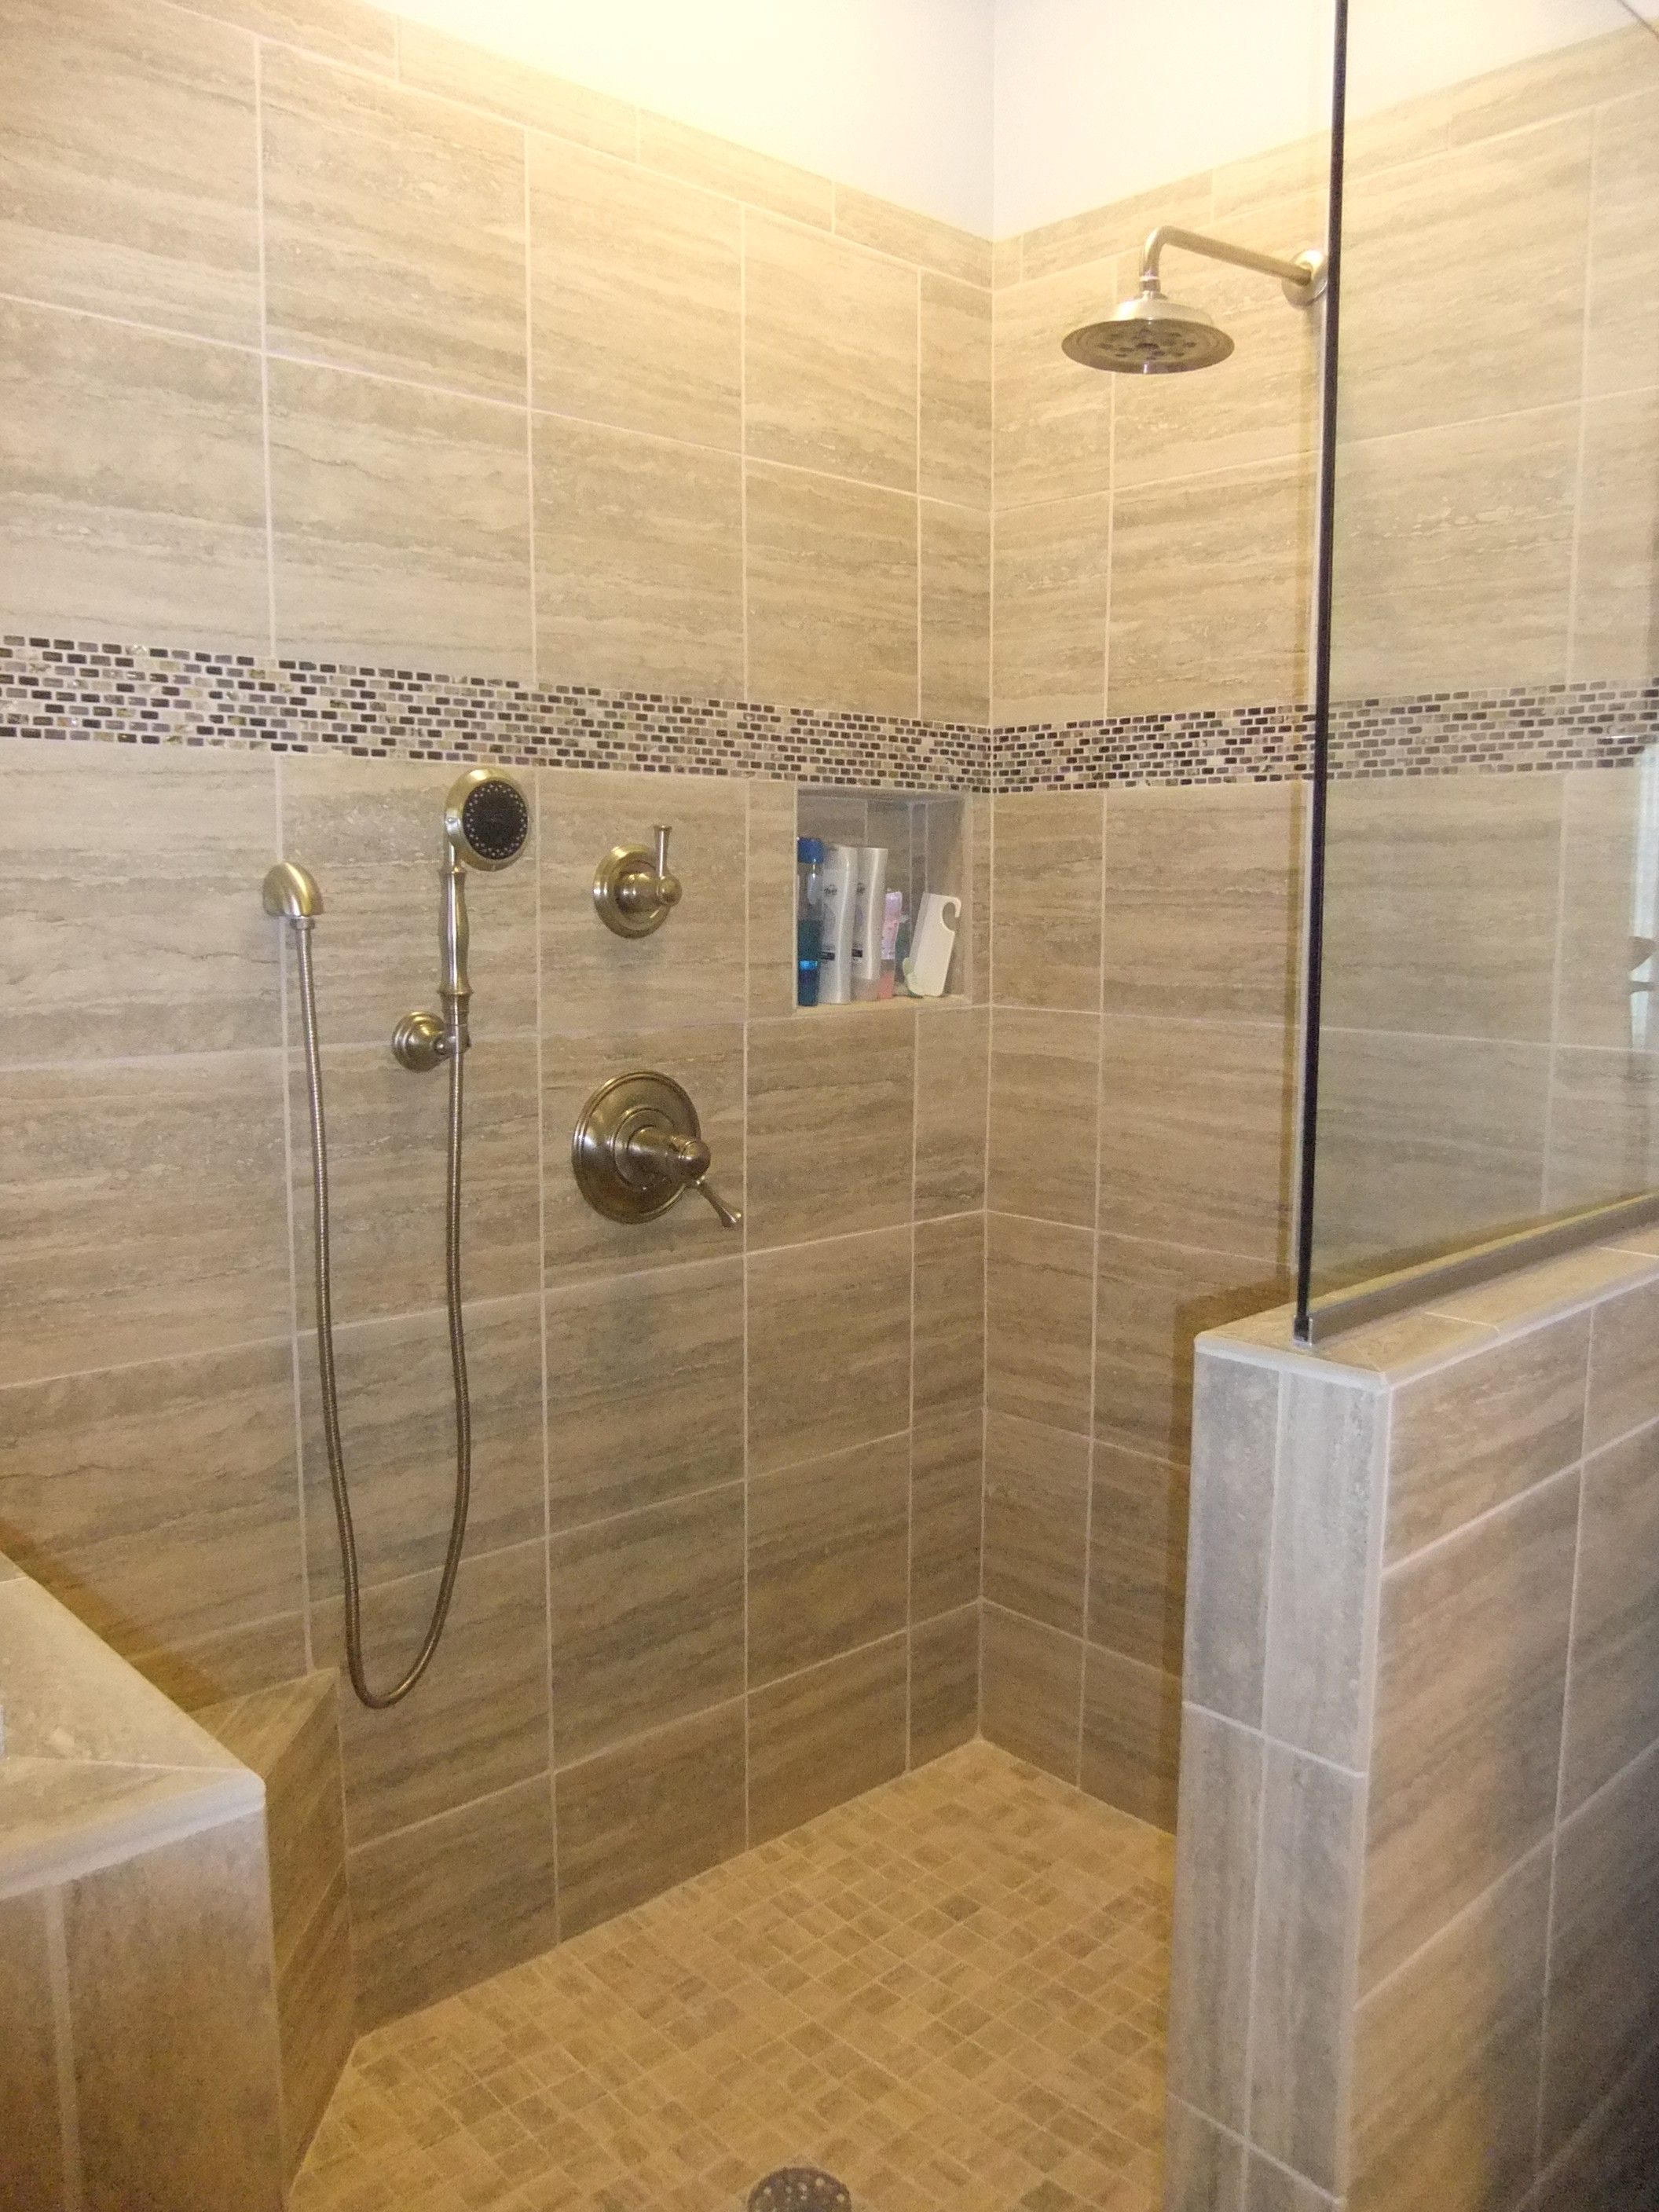 Inspiration Travertino Walk In Shower Small Bathroom With Shower Showers Without Doors Tile Walk In Shower